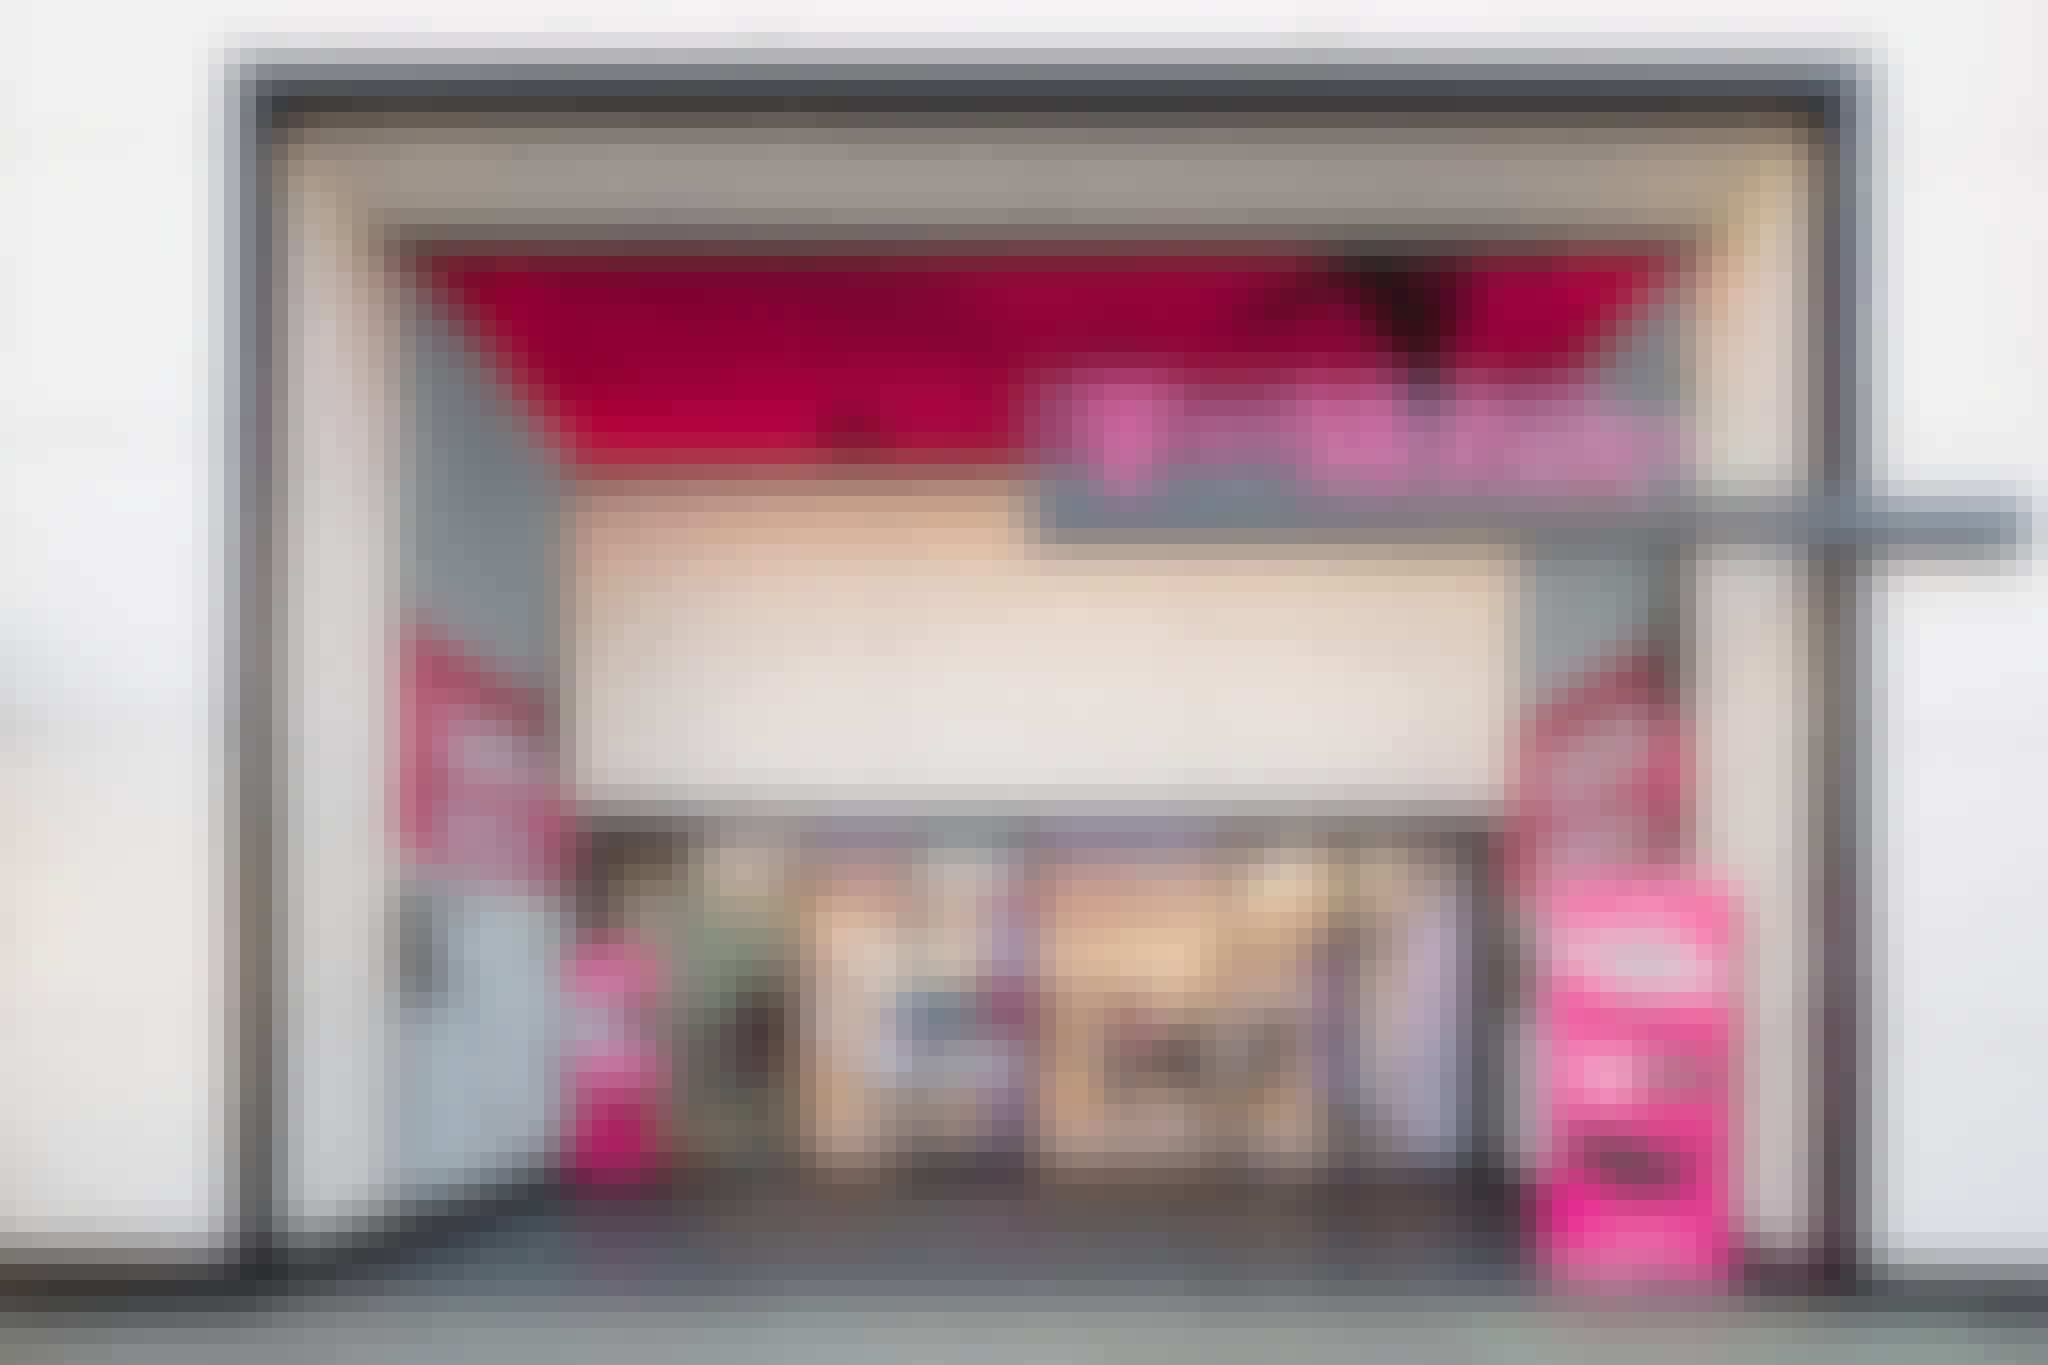 retail storefront commercial design for T-Mobile with opening glass walls